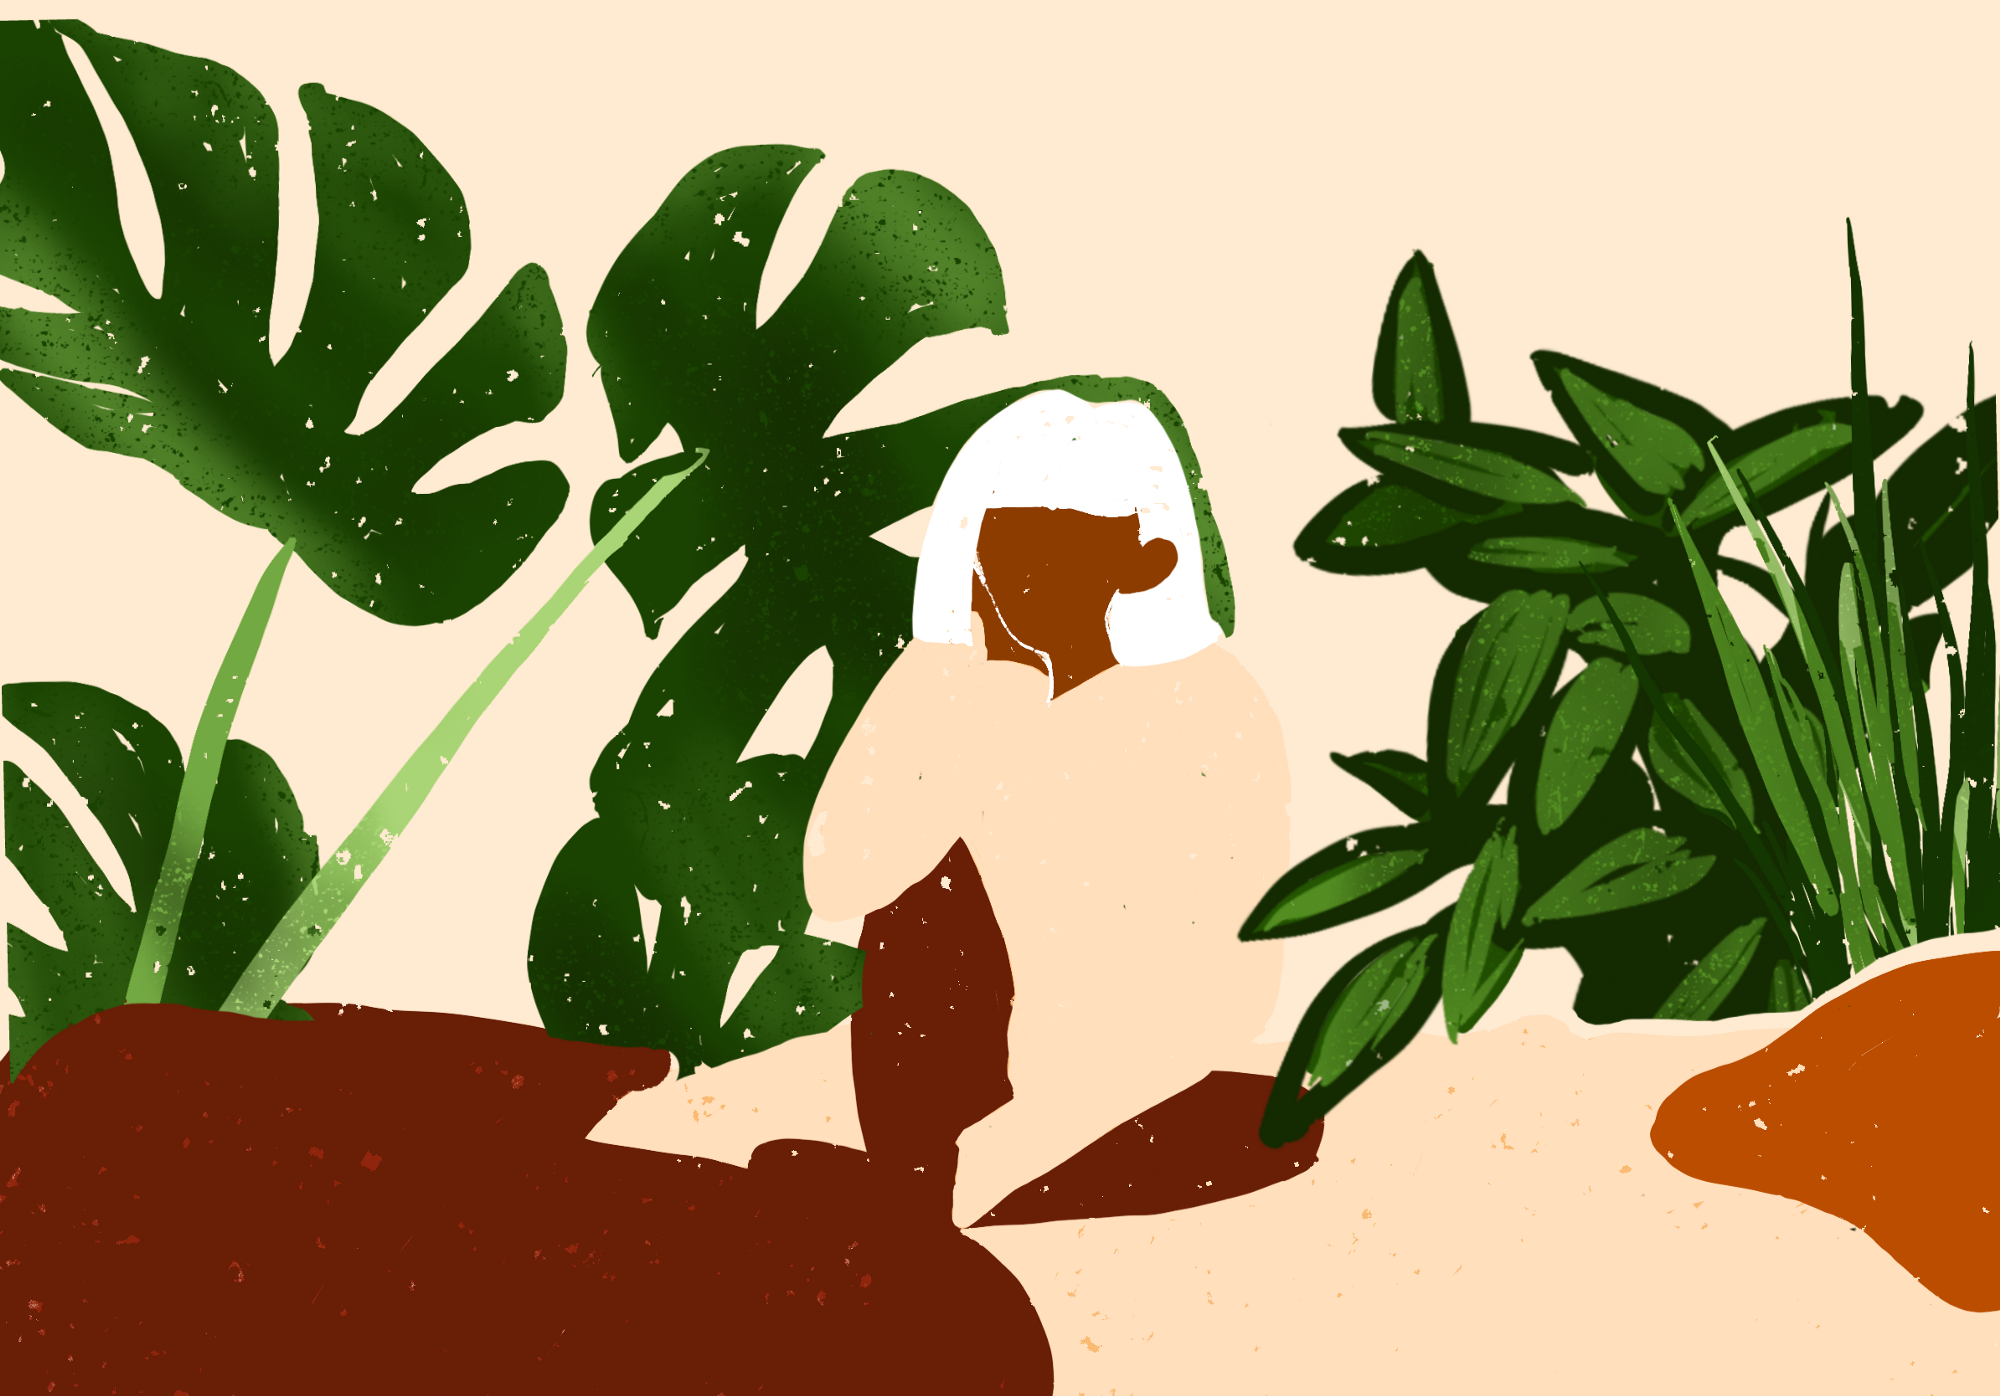 Illustration of girl sitting on a bed, surrounded by plants